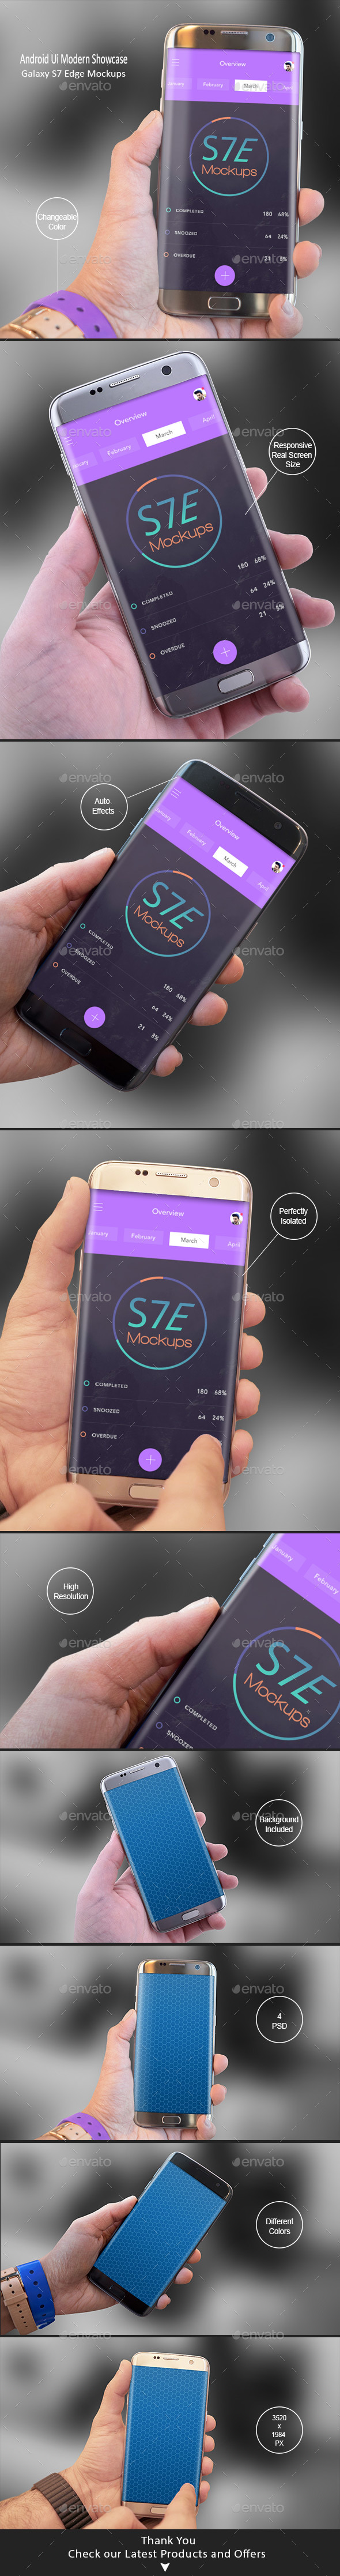 Android Modern Mockups S7 Edge - Apps Ui Showcase - Mobile Displays